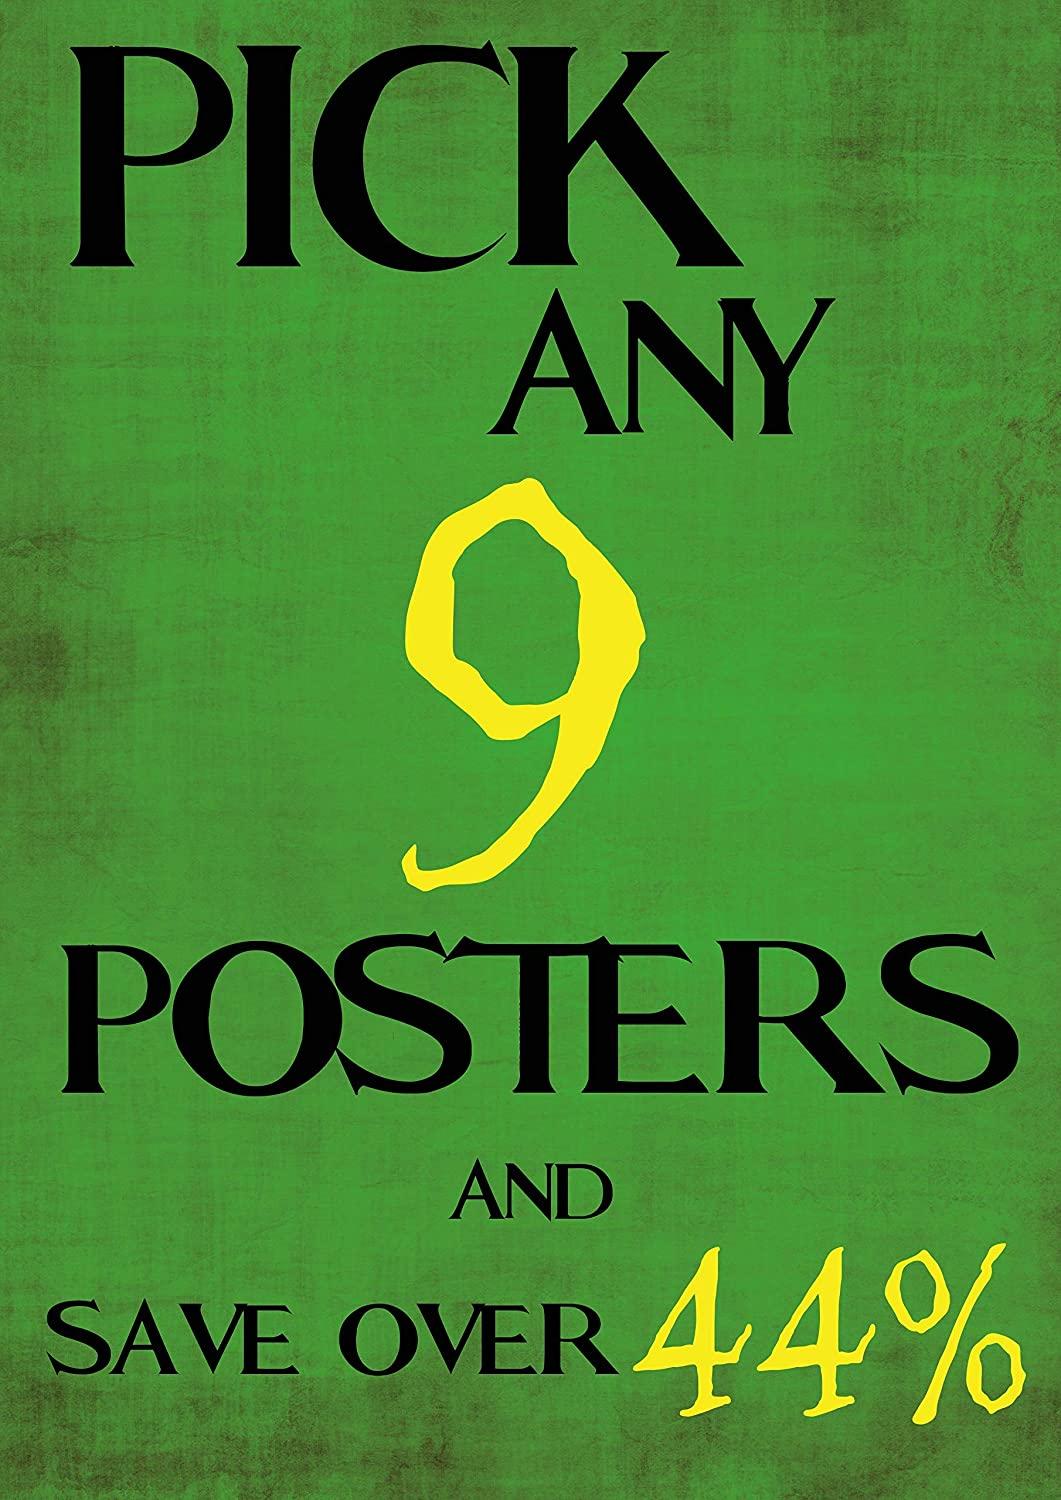 Money Saving service Offer low-pricing - Pick Any 9 of Your Choice Posters Choose Y